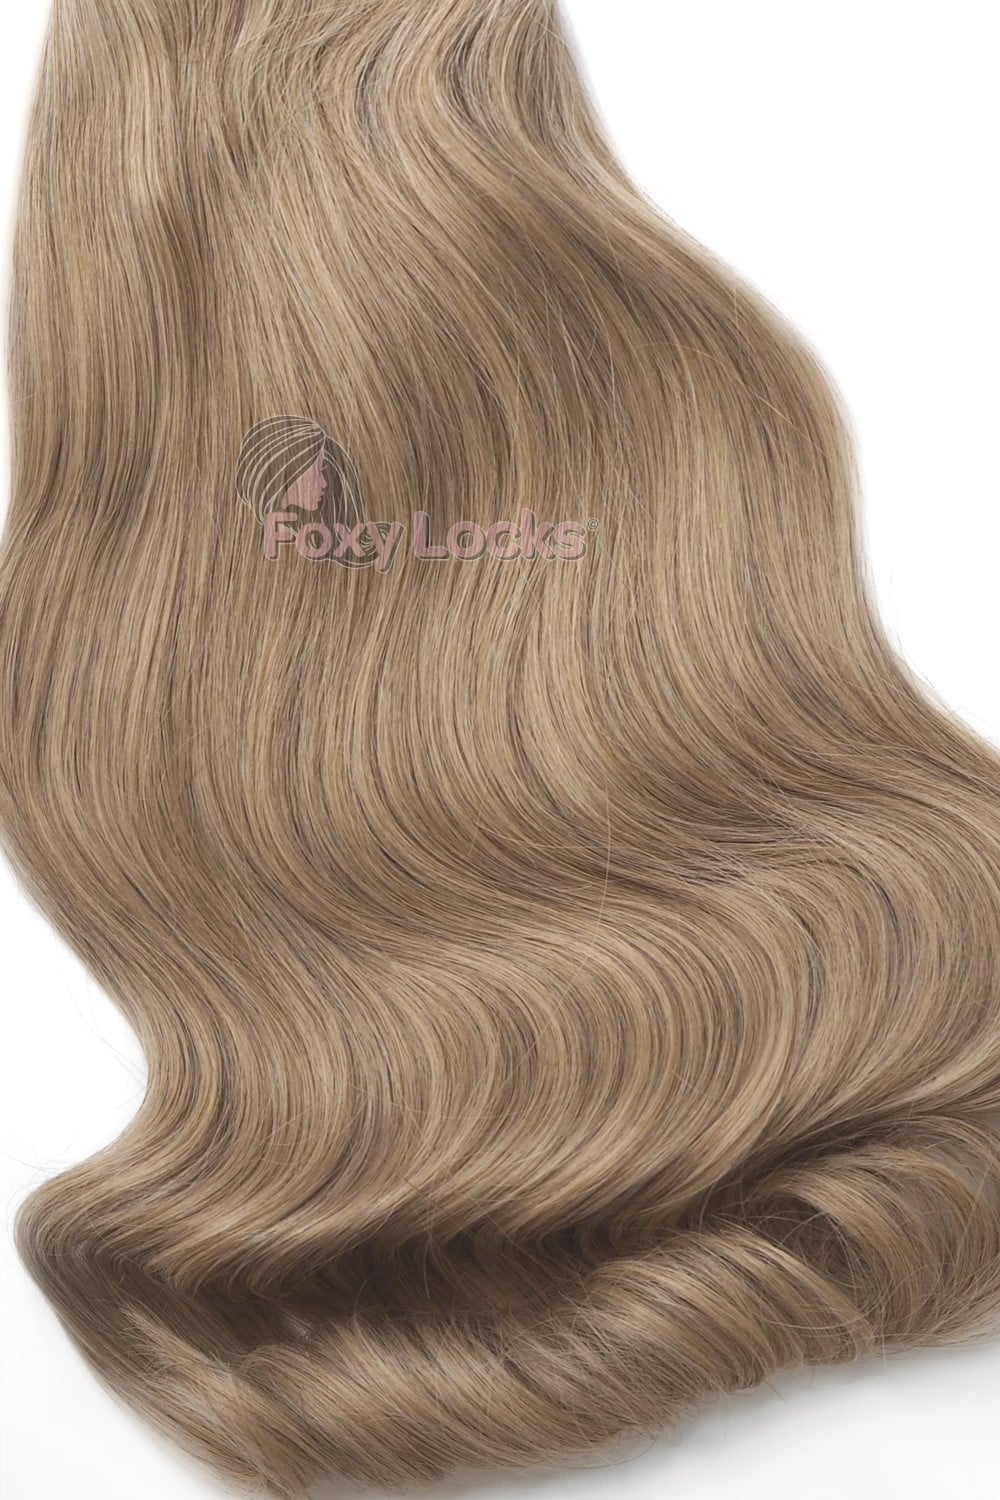 Caramel Blonde 20 Deluxe 20 Clip In Human Hair Extensions 165g